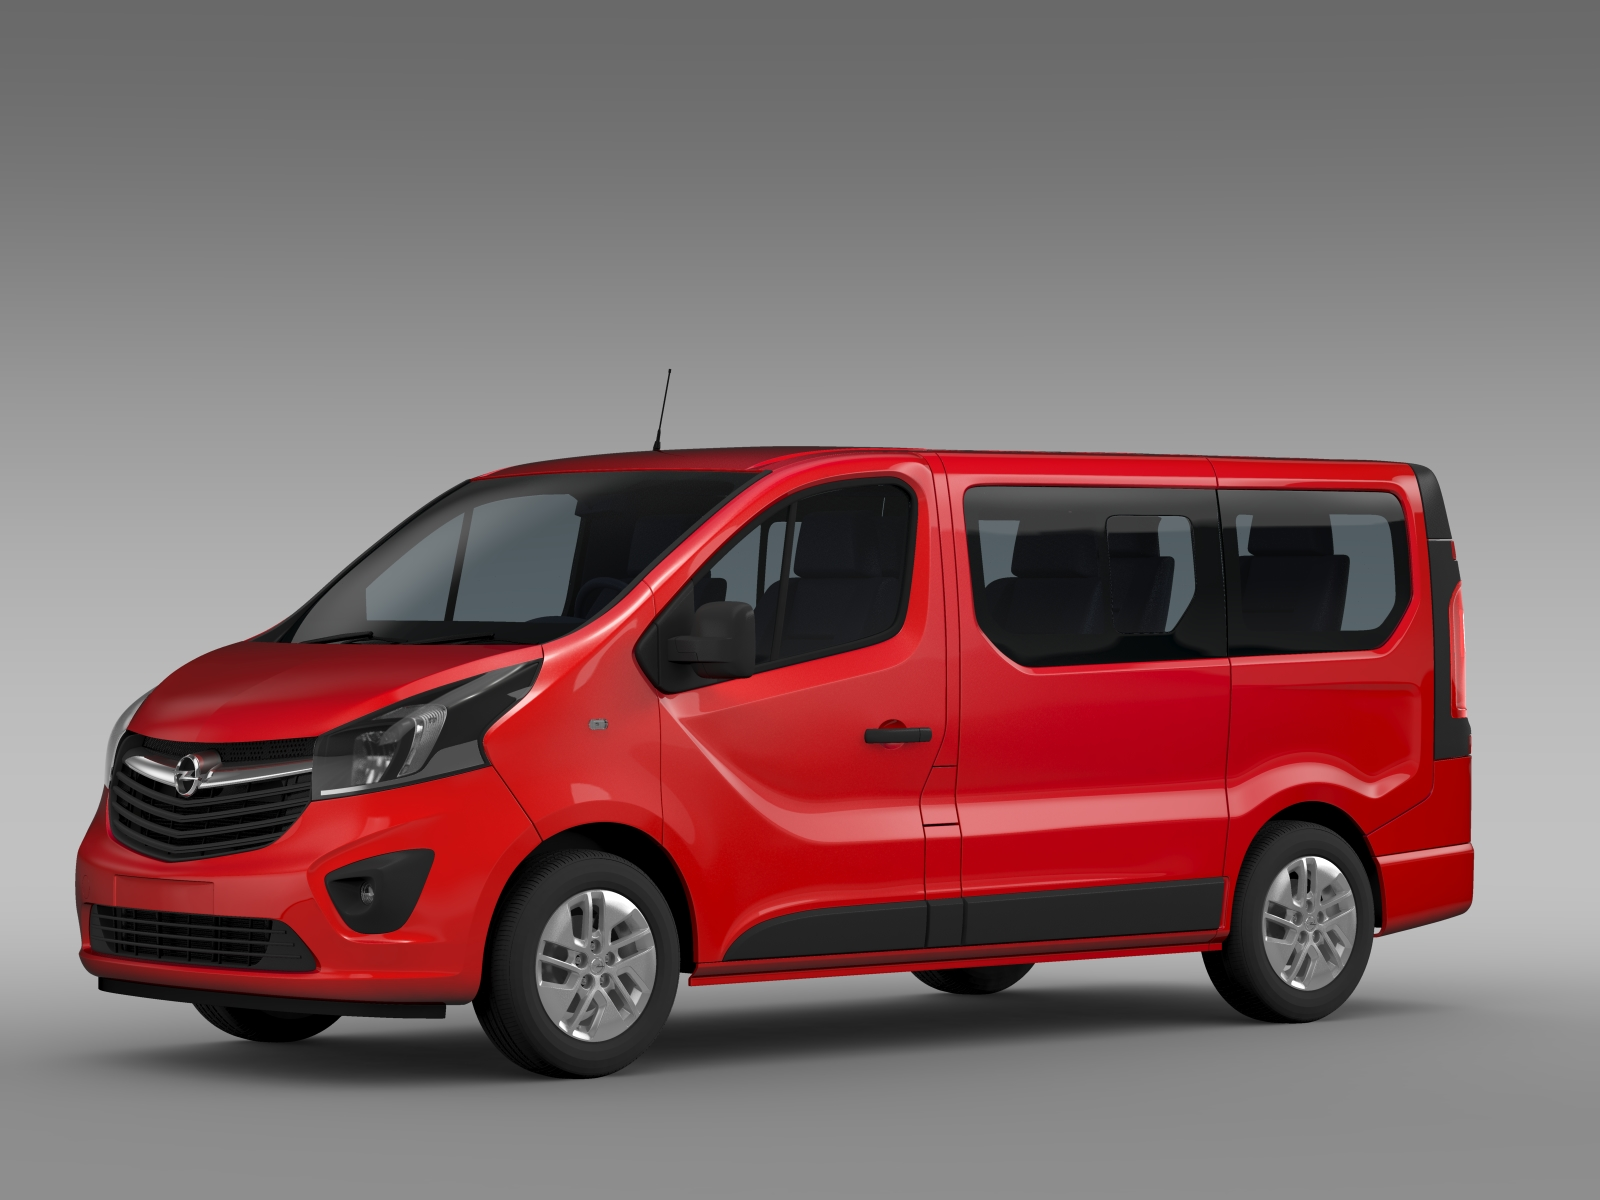 opel vivaro 2015 3d model buy opel vivaro 2015 3d model flatpyramid. Black Bedroom Furniture Sets. Home Design Ideas